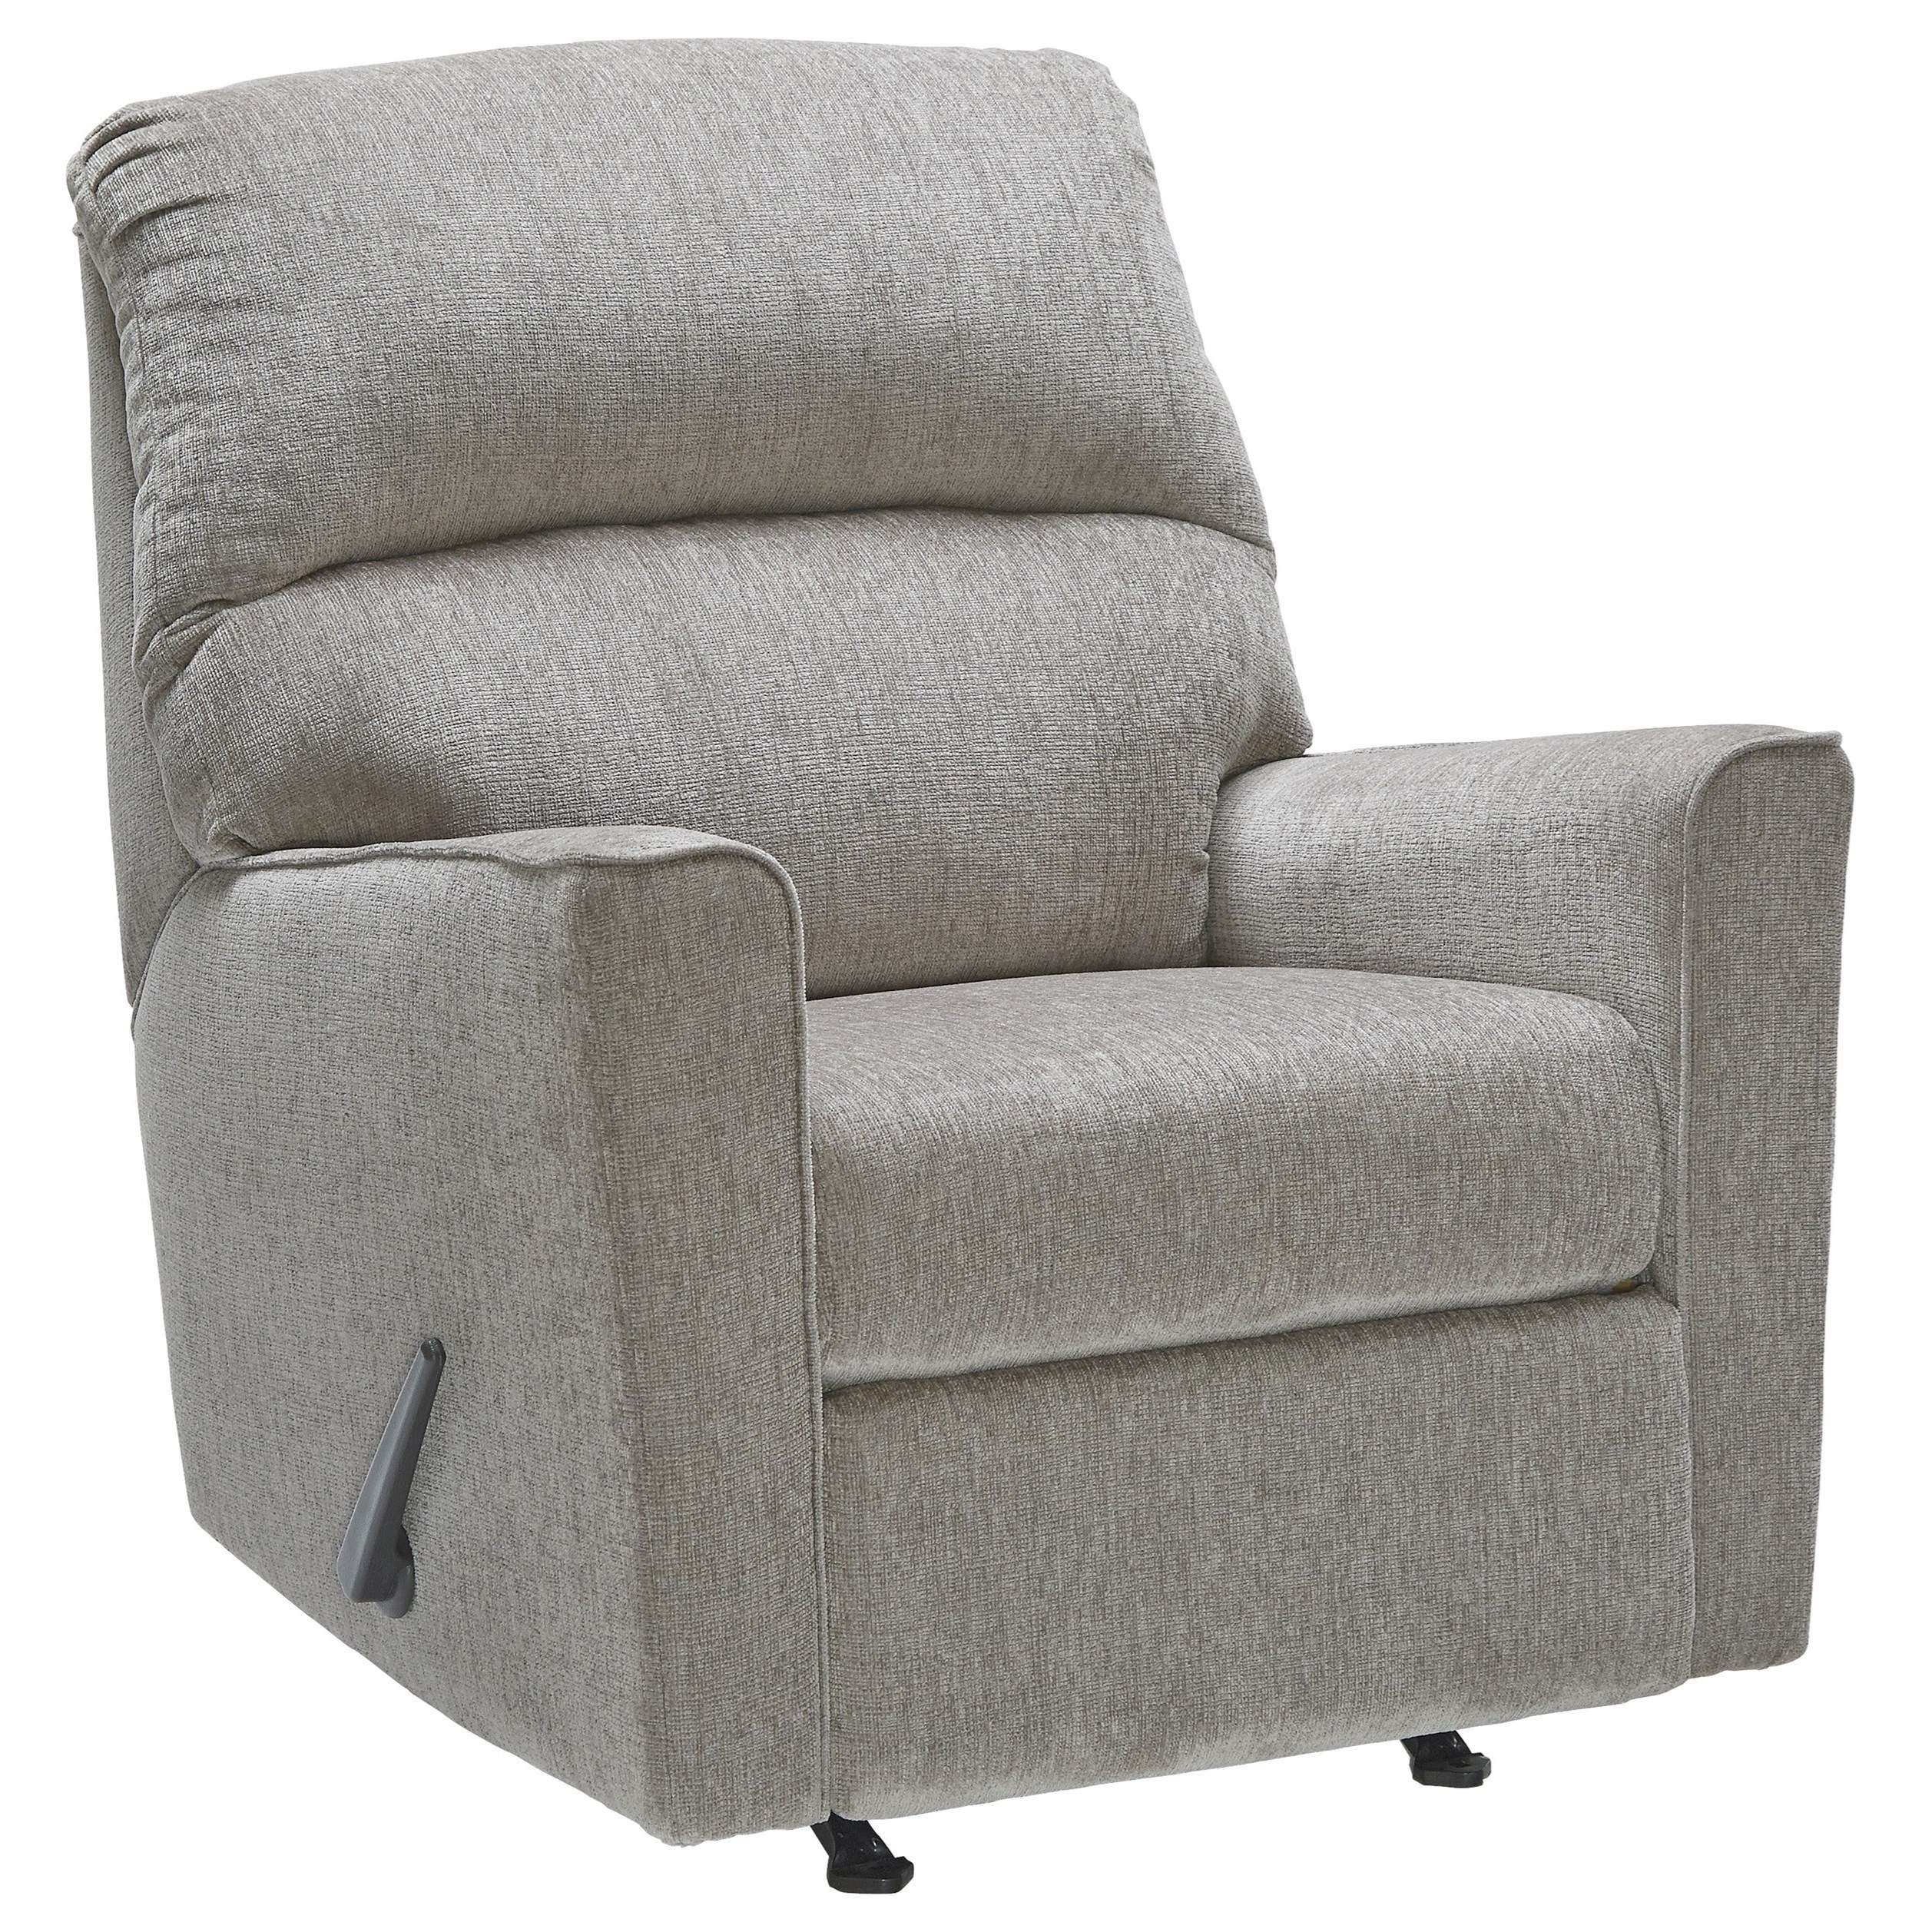 Altari Rocker Recliner by Signature Design by Ashley at Beds N Stuff